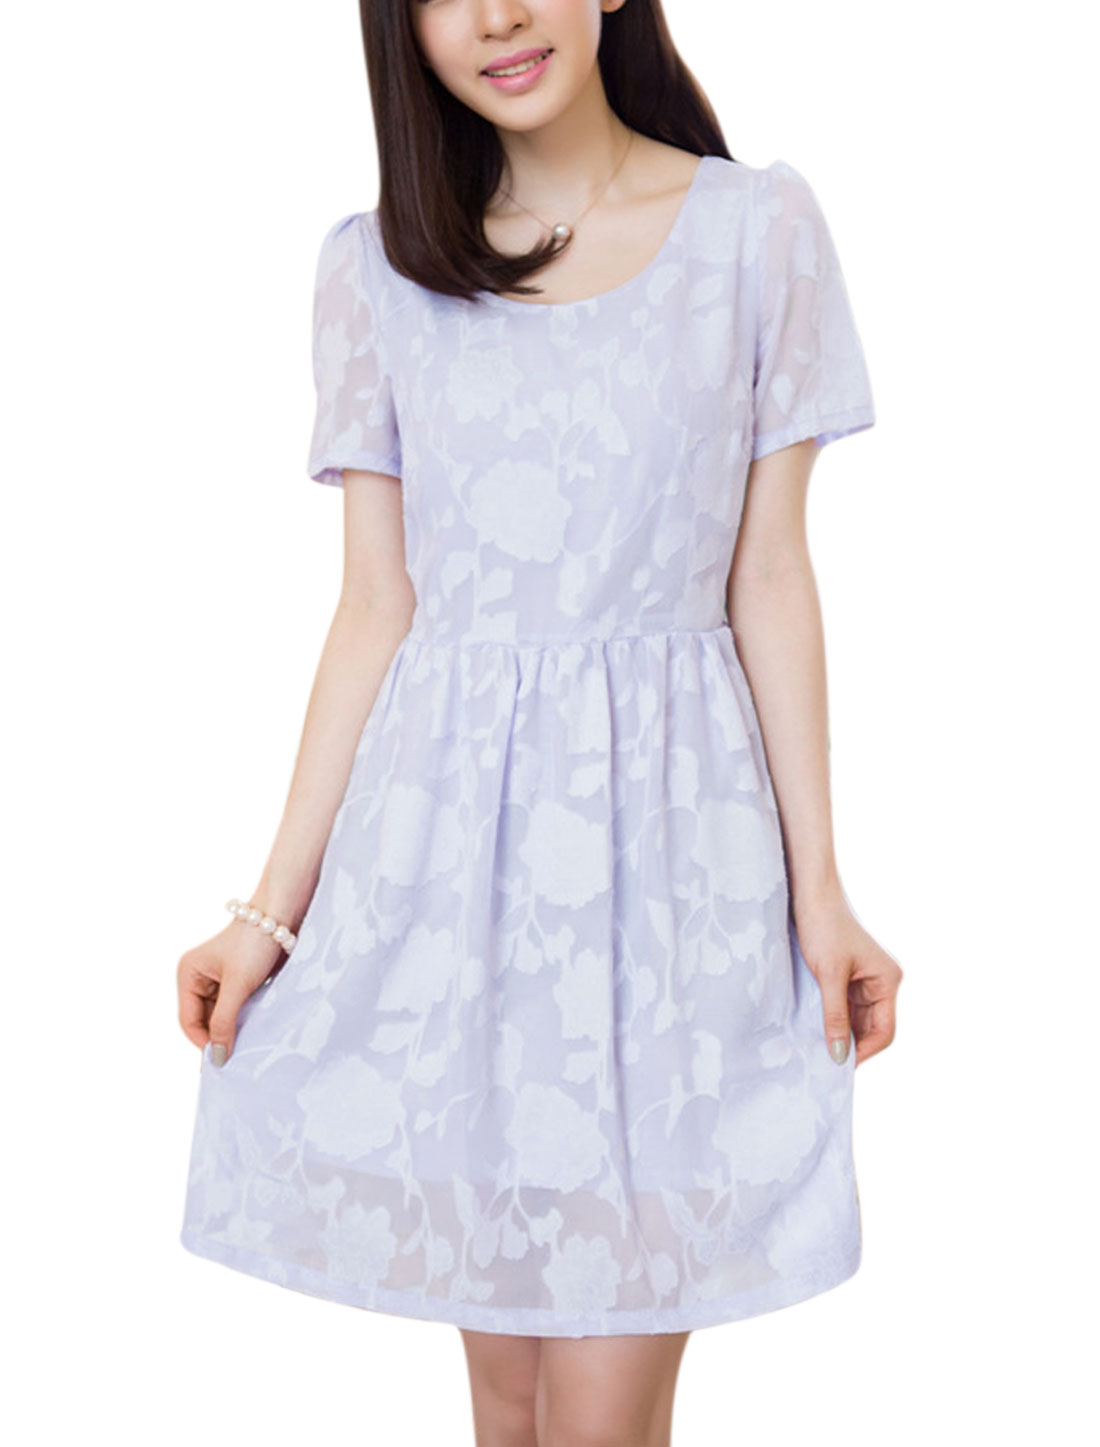 Ladies Flower Textured Design Full Lined Summer Fit Chiffon Dress Light Purple M